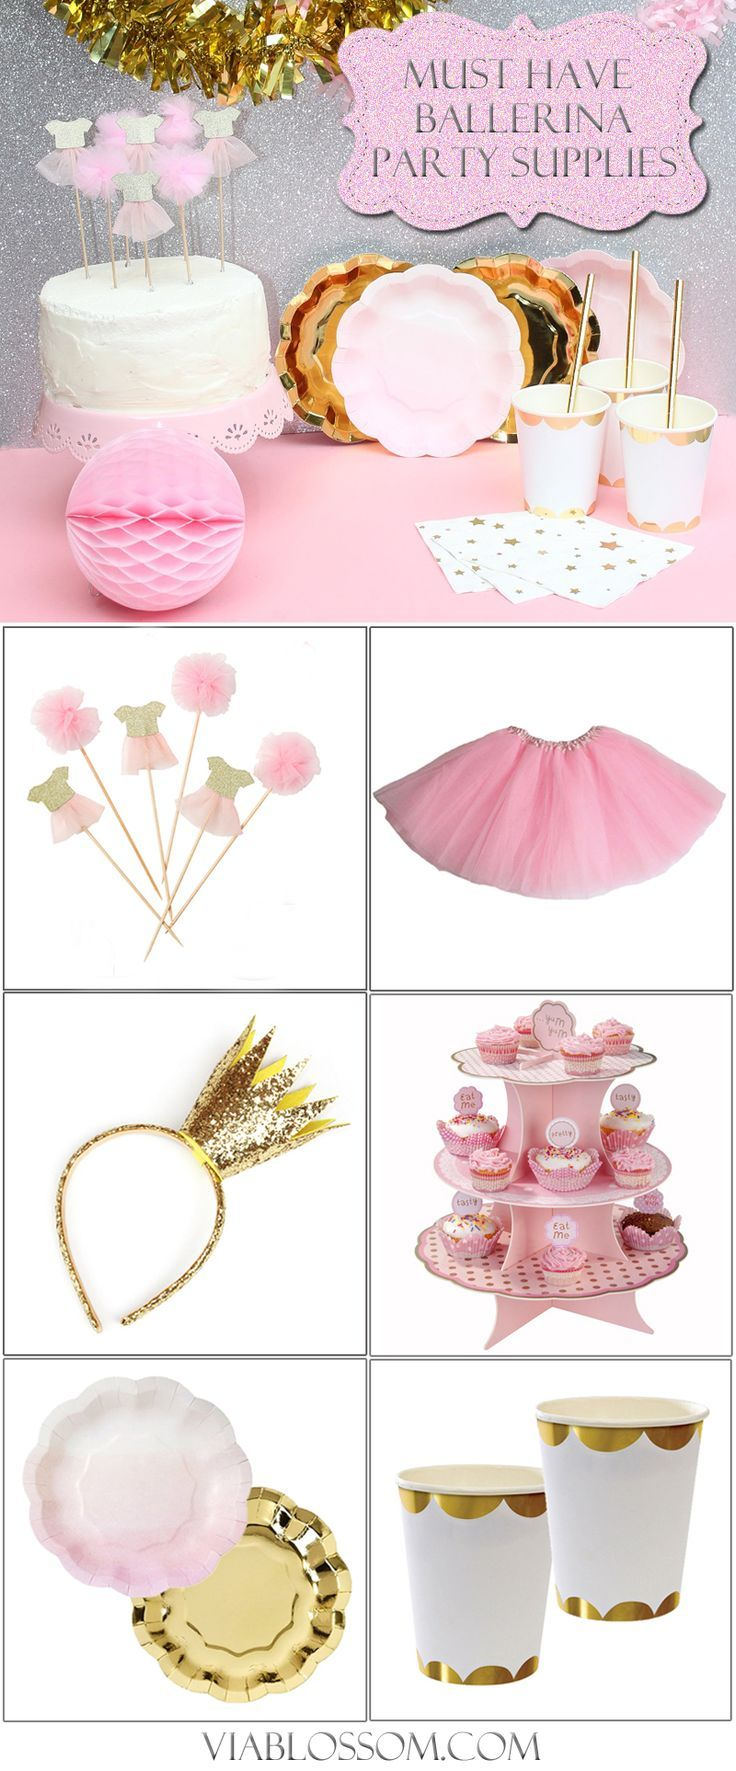 Must Have Ballerina Party Supplies for a Magical girl birthday party!  Shop all at http://viablossom.com